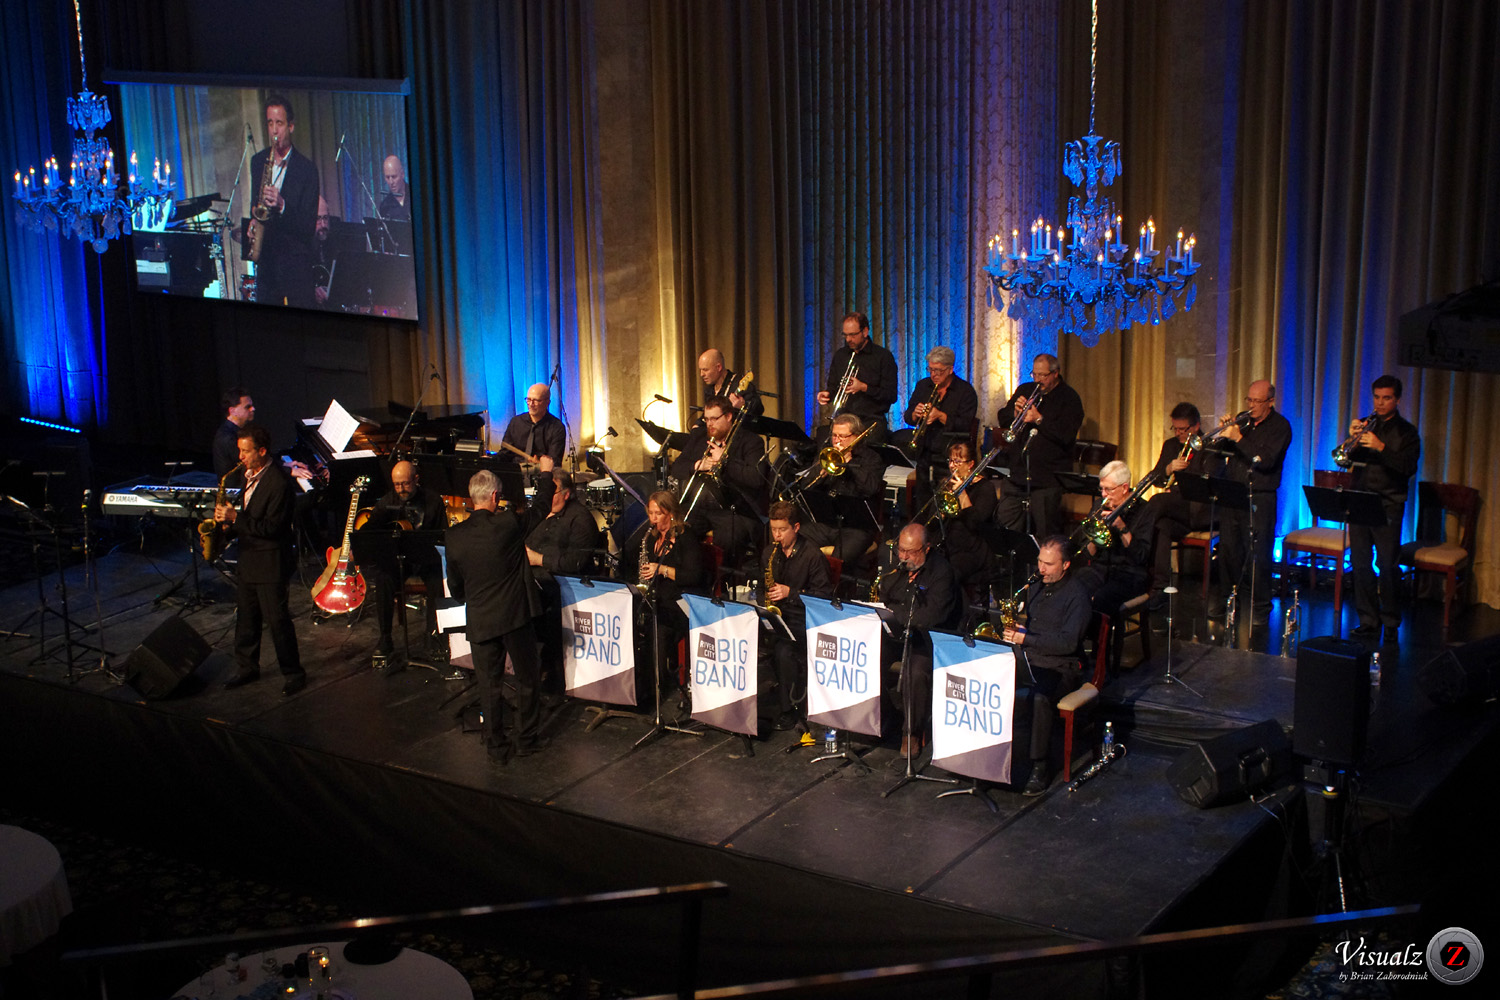 IMGP7310 - River City Big Band with Eric Marienthal